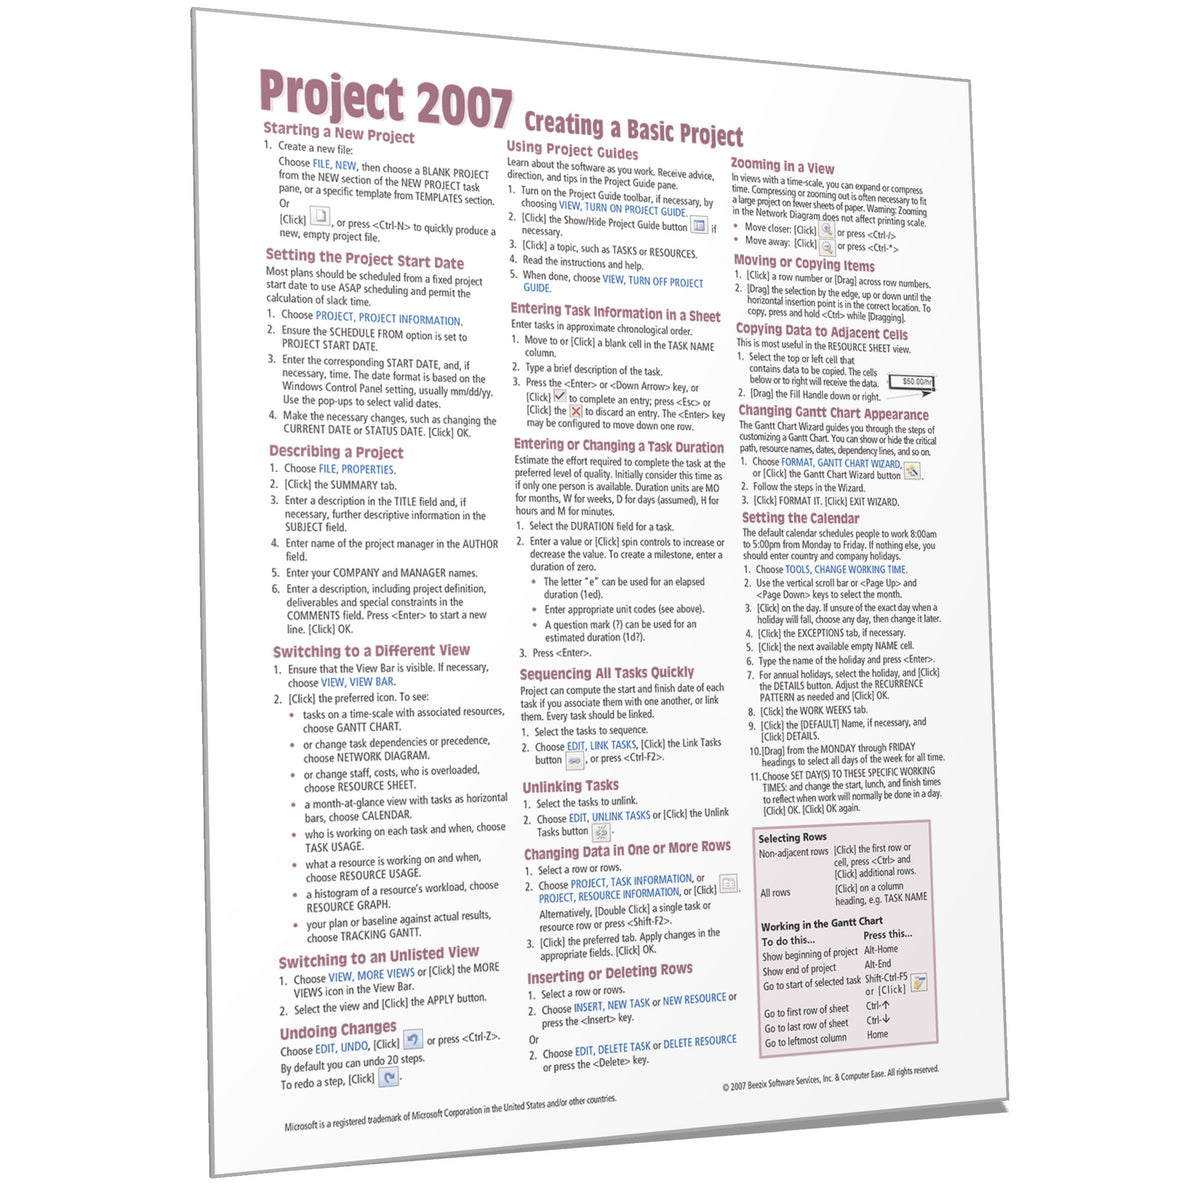 Microsoft Project 2007 Quick Reference, Cheat Sheet Card